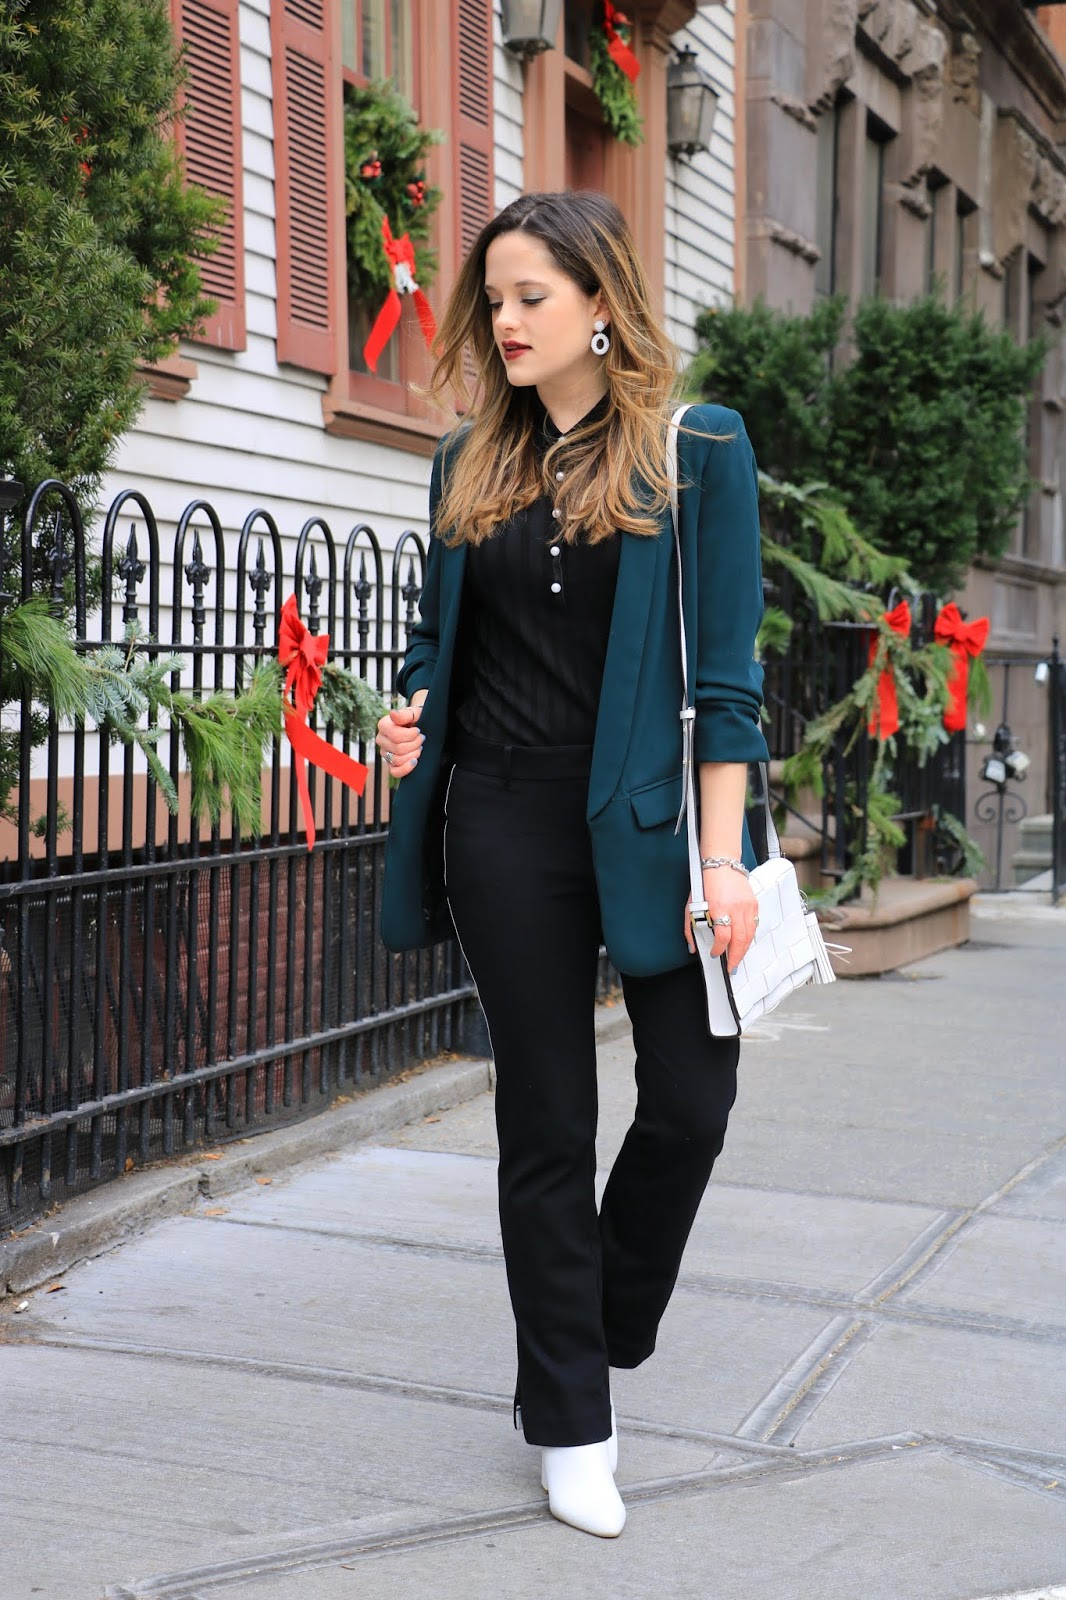 Nyc fashion blogger Kathleen Harper's non-dress holiday party outfit